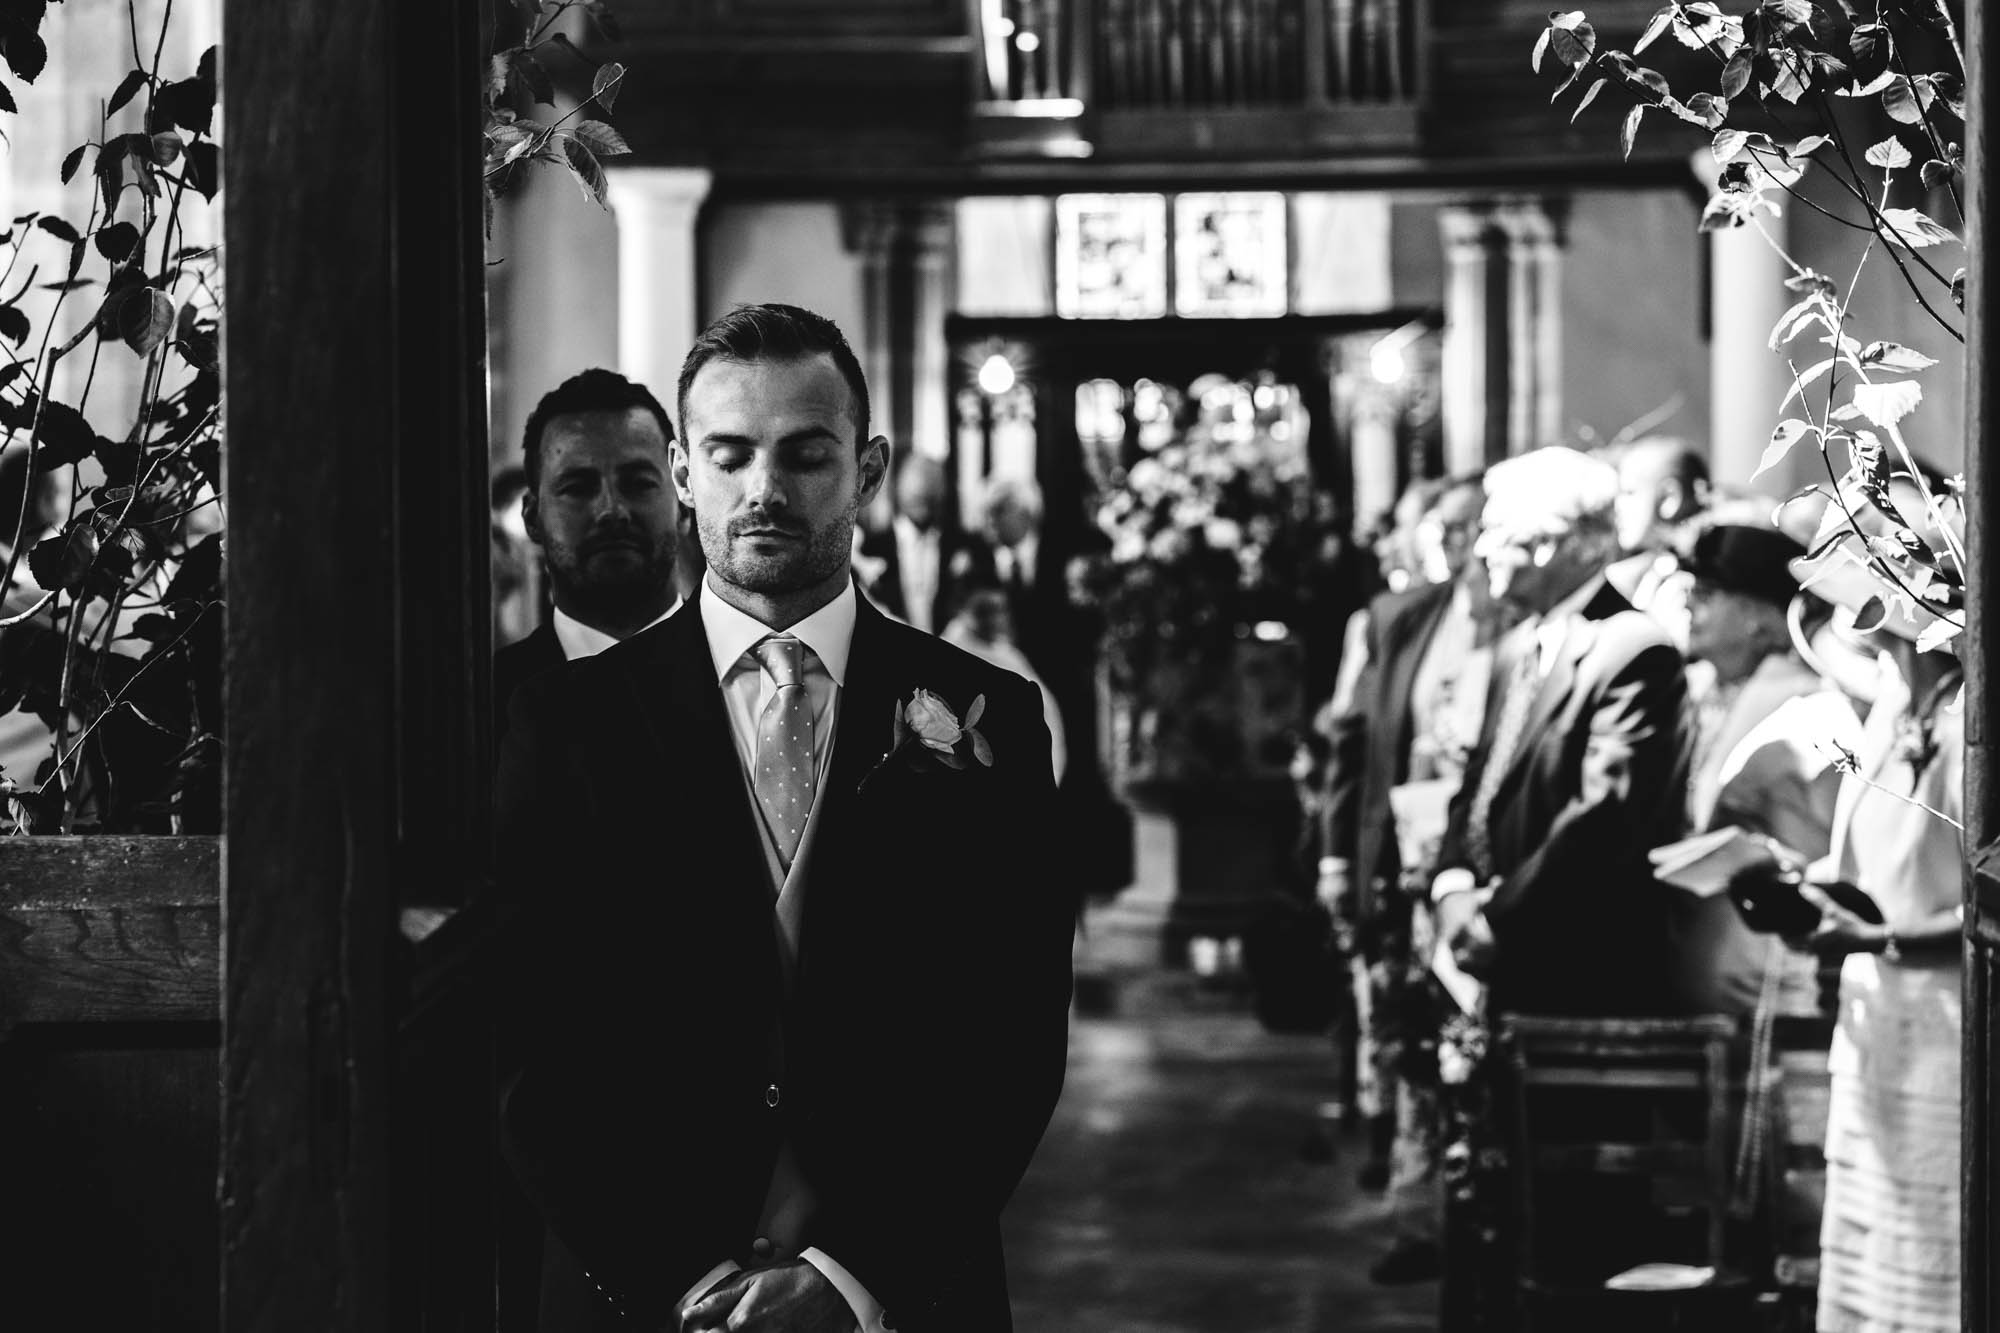 gemy-maalouf-wedding-27